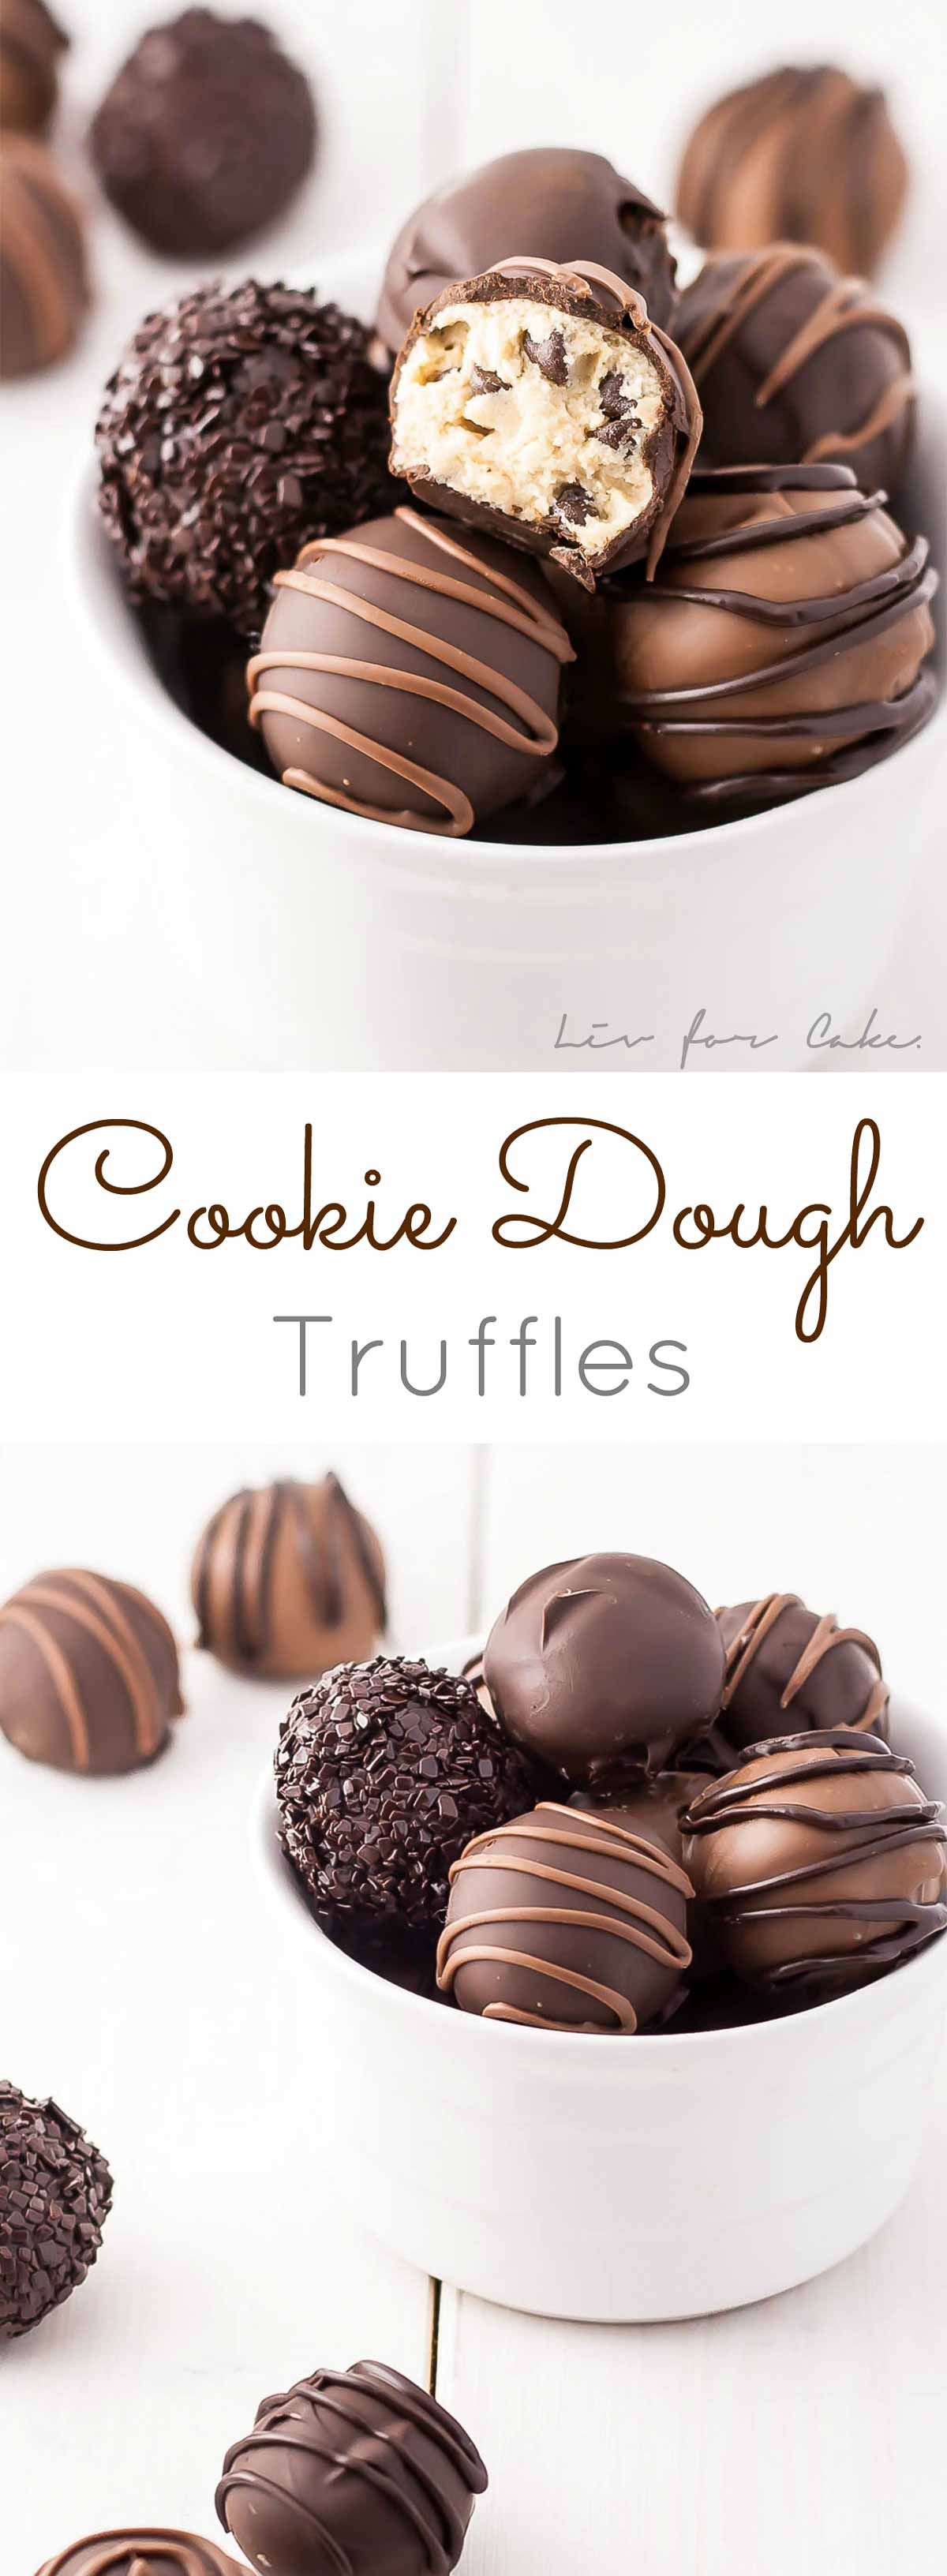 These egg-free edible Cookie Dough Truffles are the perfect bite-sized treat! Dip them in chocolate or eat them plain. | livforcake.com